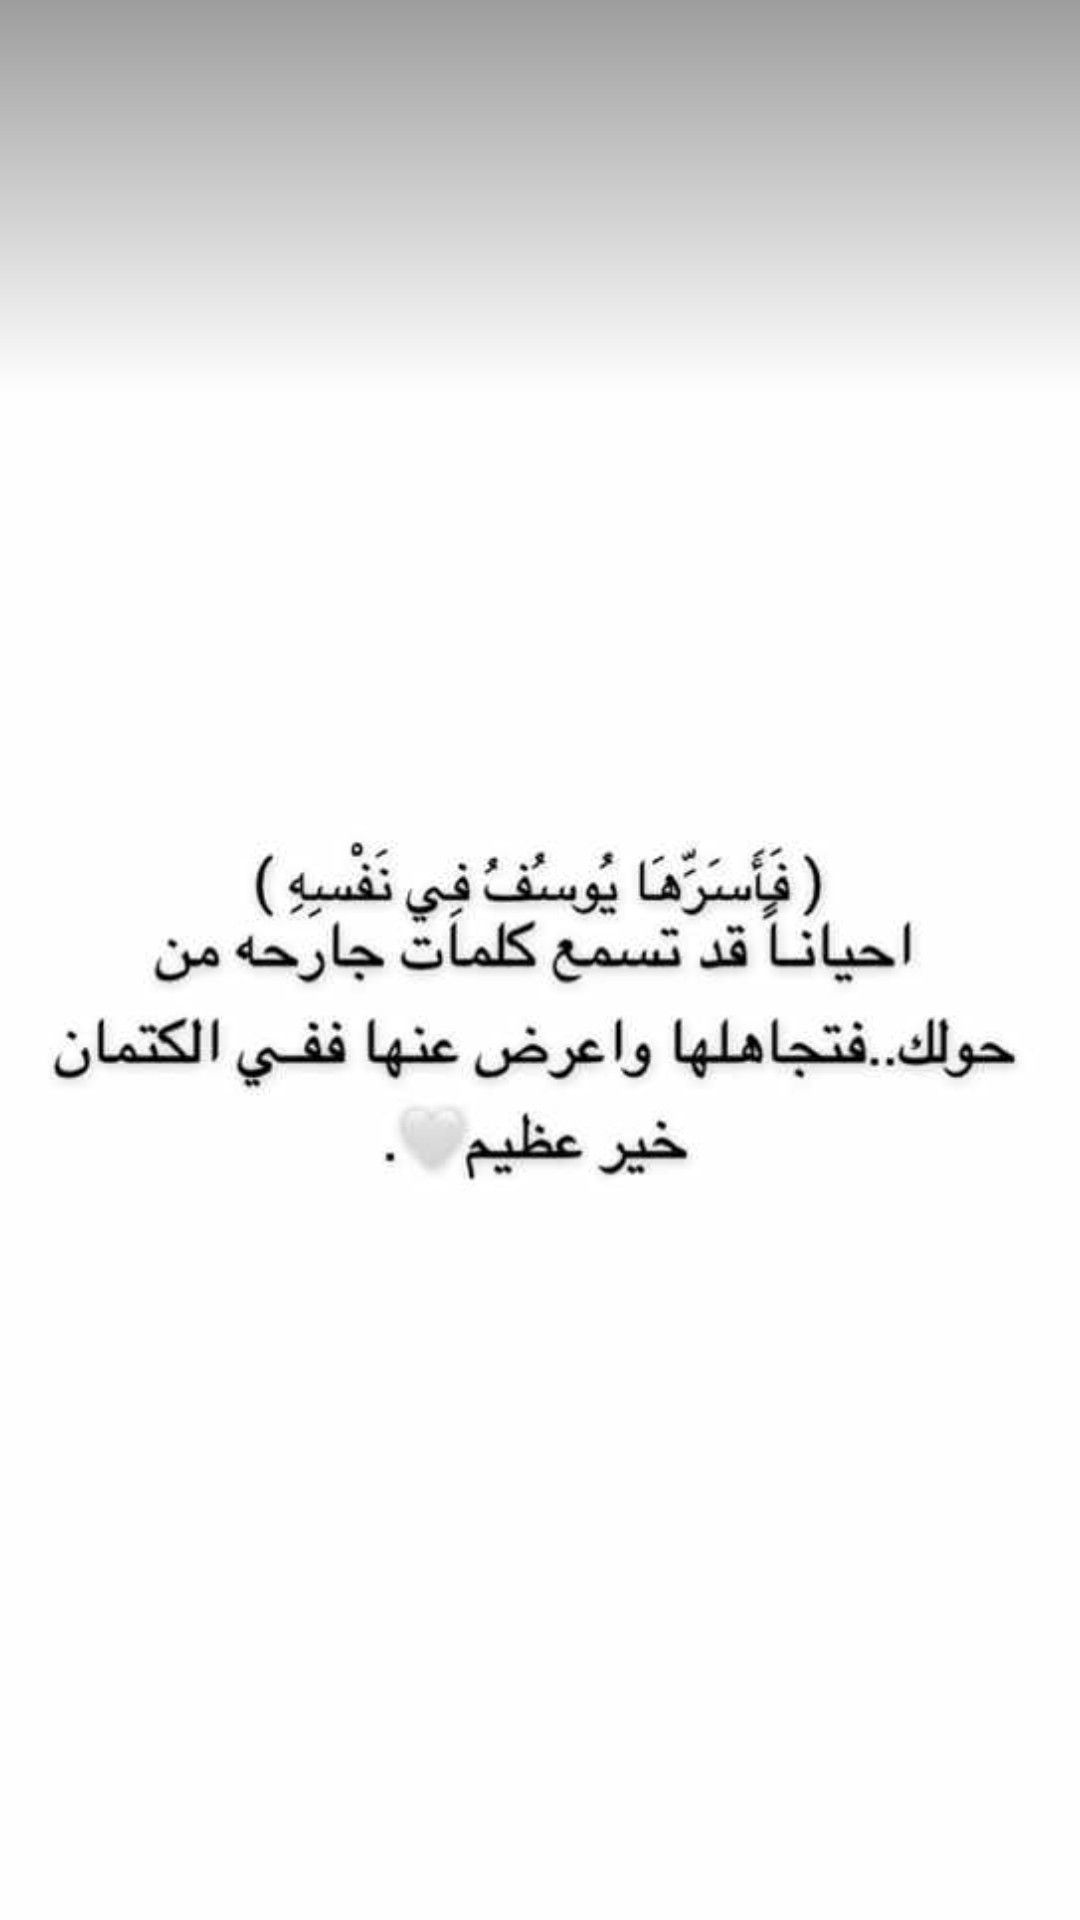 Pin By Haidy On إنتقاء الحكمه Arabic Quotes Islam Quran Quotes